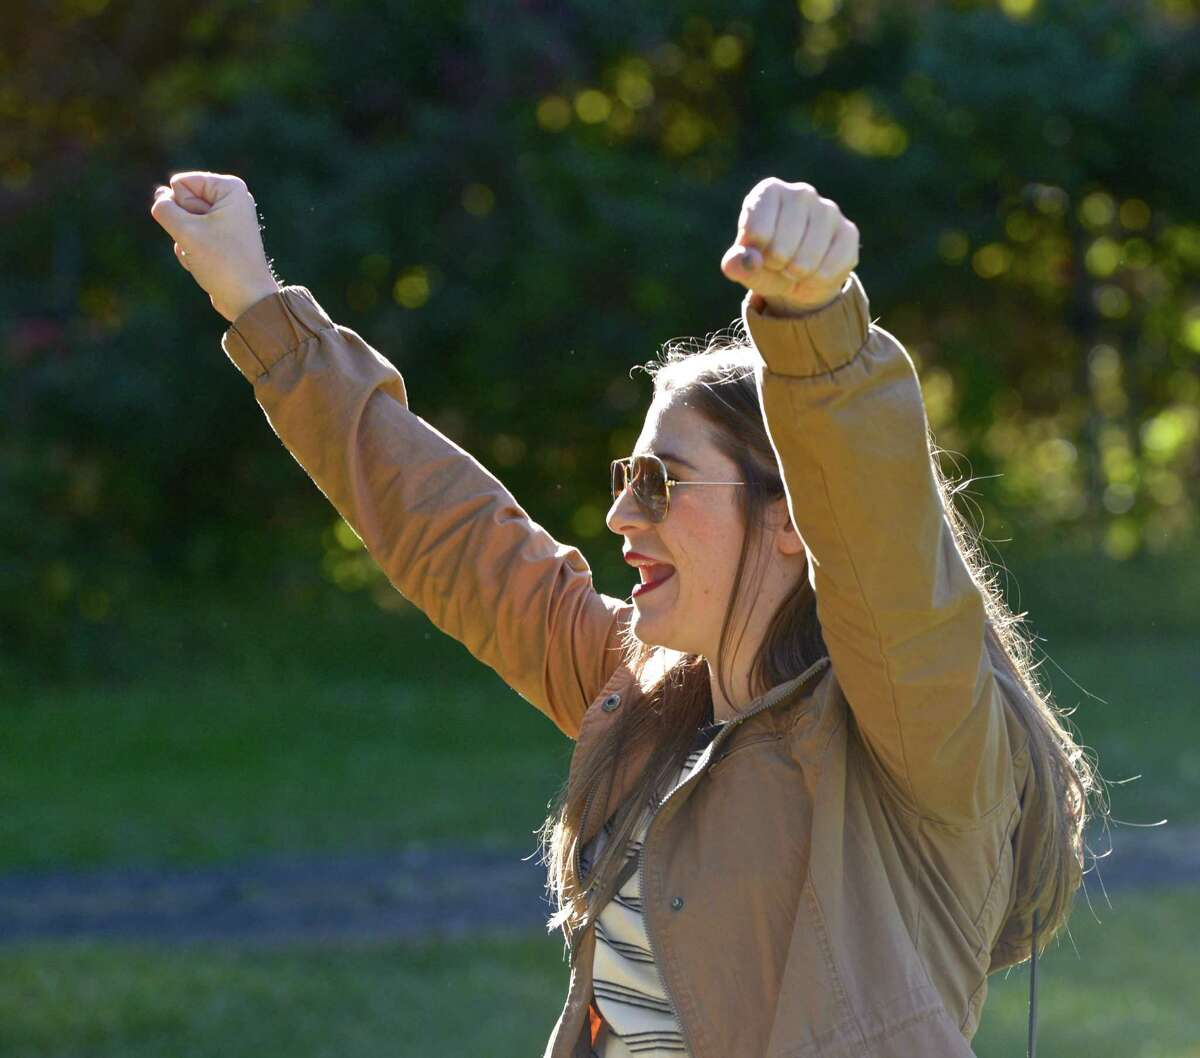 """Laura Richards, of Ridgefield, celebrates a score in the game of """"Corn Hole"""" she was playing with her friends at Ives Concert Park, on Saturday, October 10, 2015, in Danbury, Conn. They were at the park, on Western Connecticut State University's Westside Campus, for the 1st Annual """"Harvest Jam""""."""